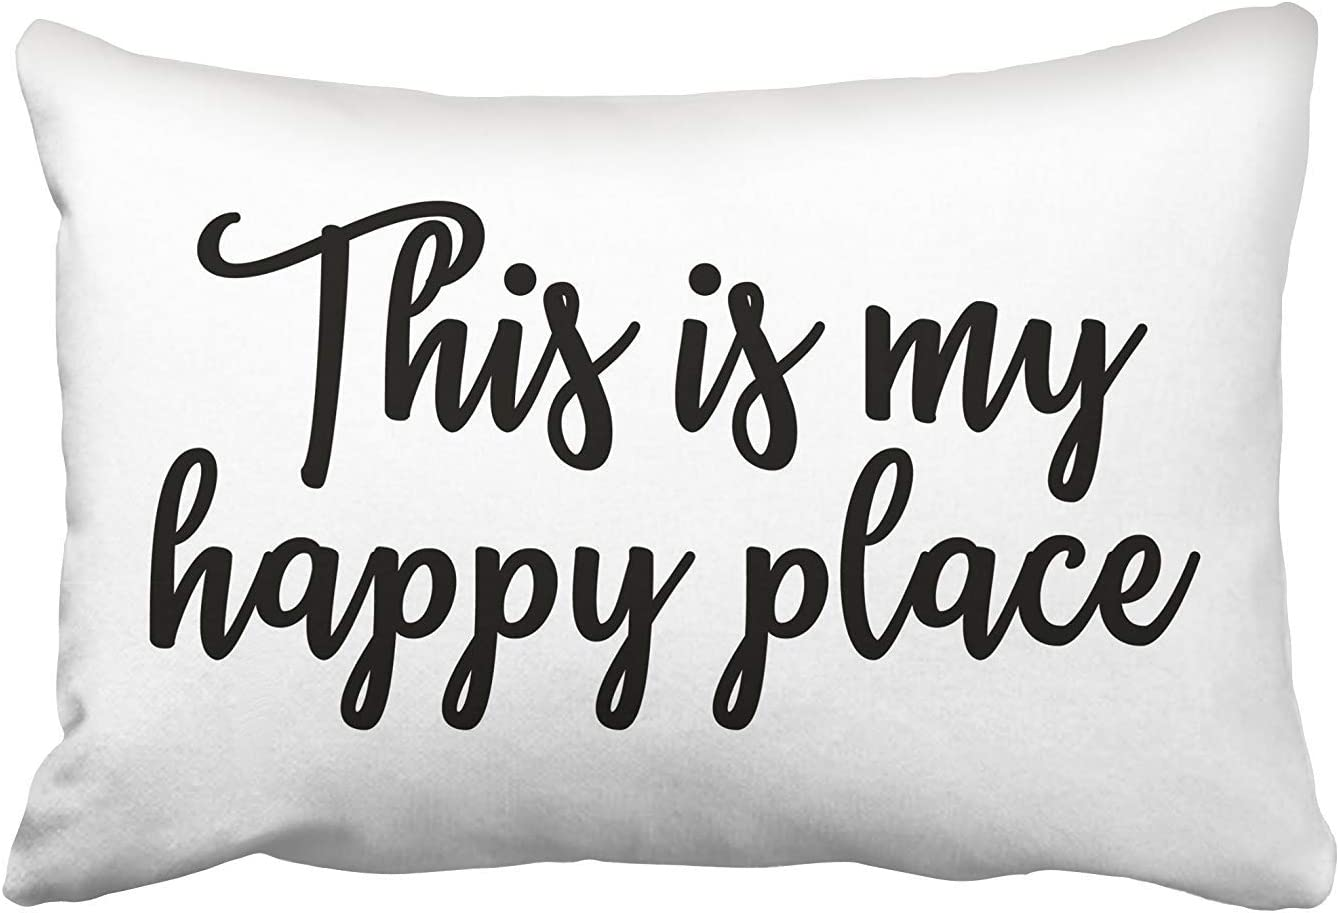 Amazon Com Mesllings This Is My Happy Place Pillow Cushions Case Throw Pillow Cover For Sofa Home Decorative Pillowslip Gift Ideas Household Pillowcase Zippered Pillow Covers 20x30inch Home Kitchen